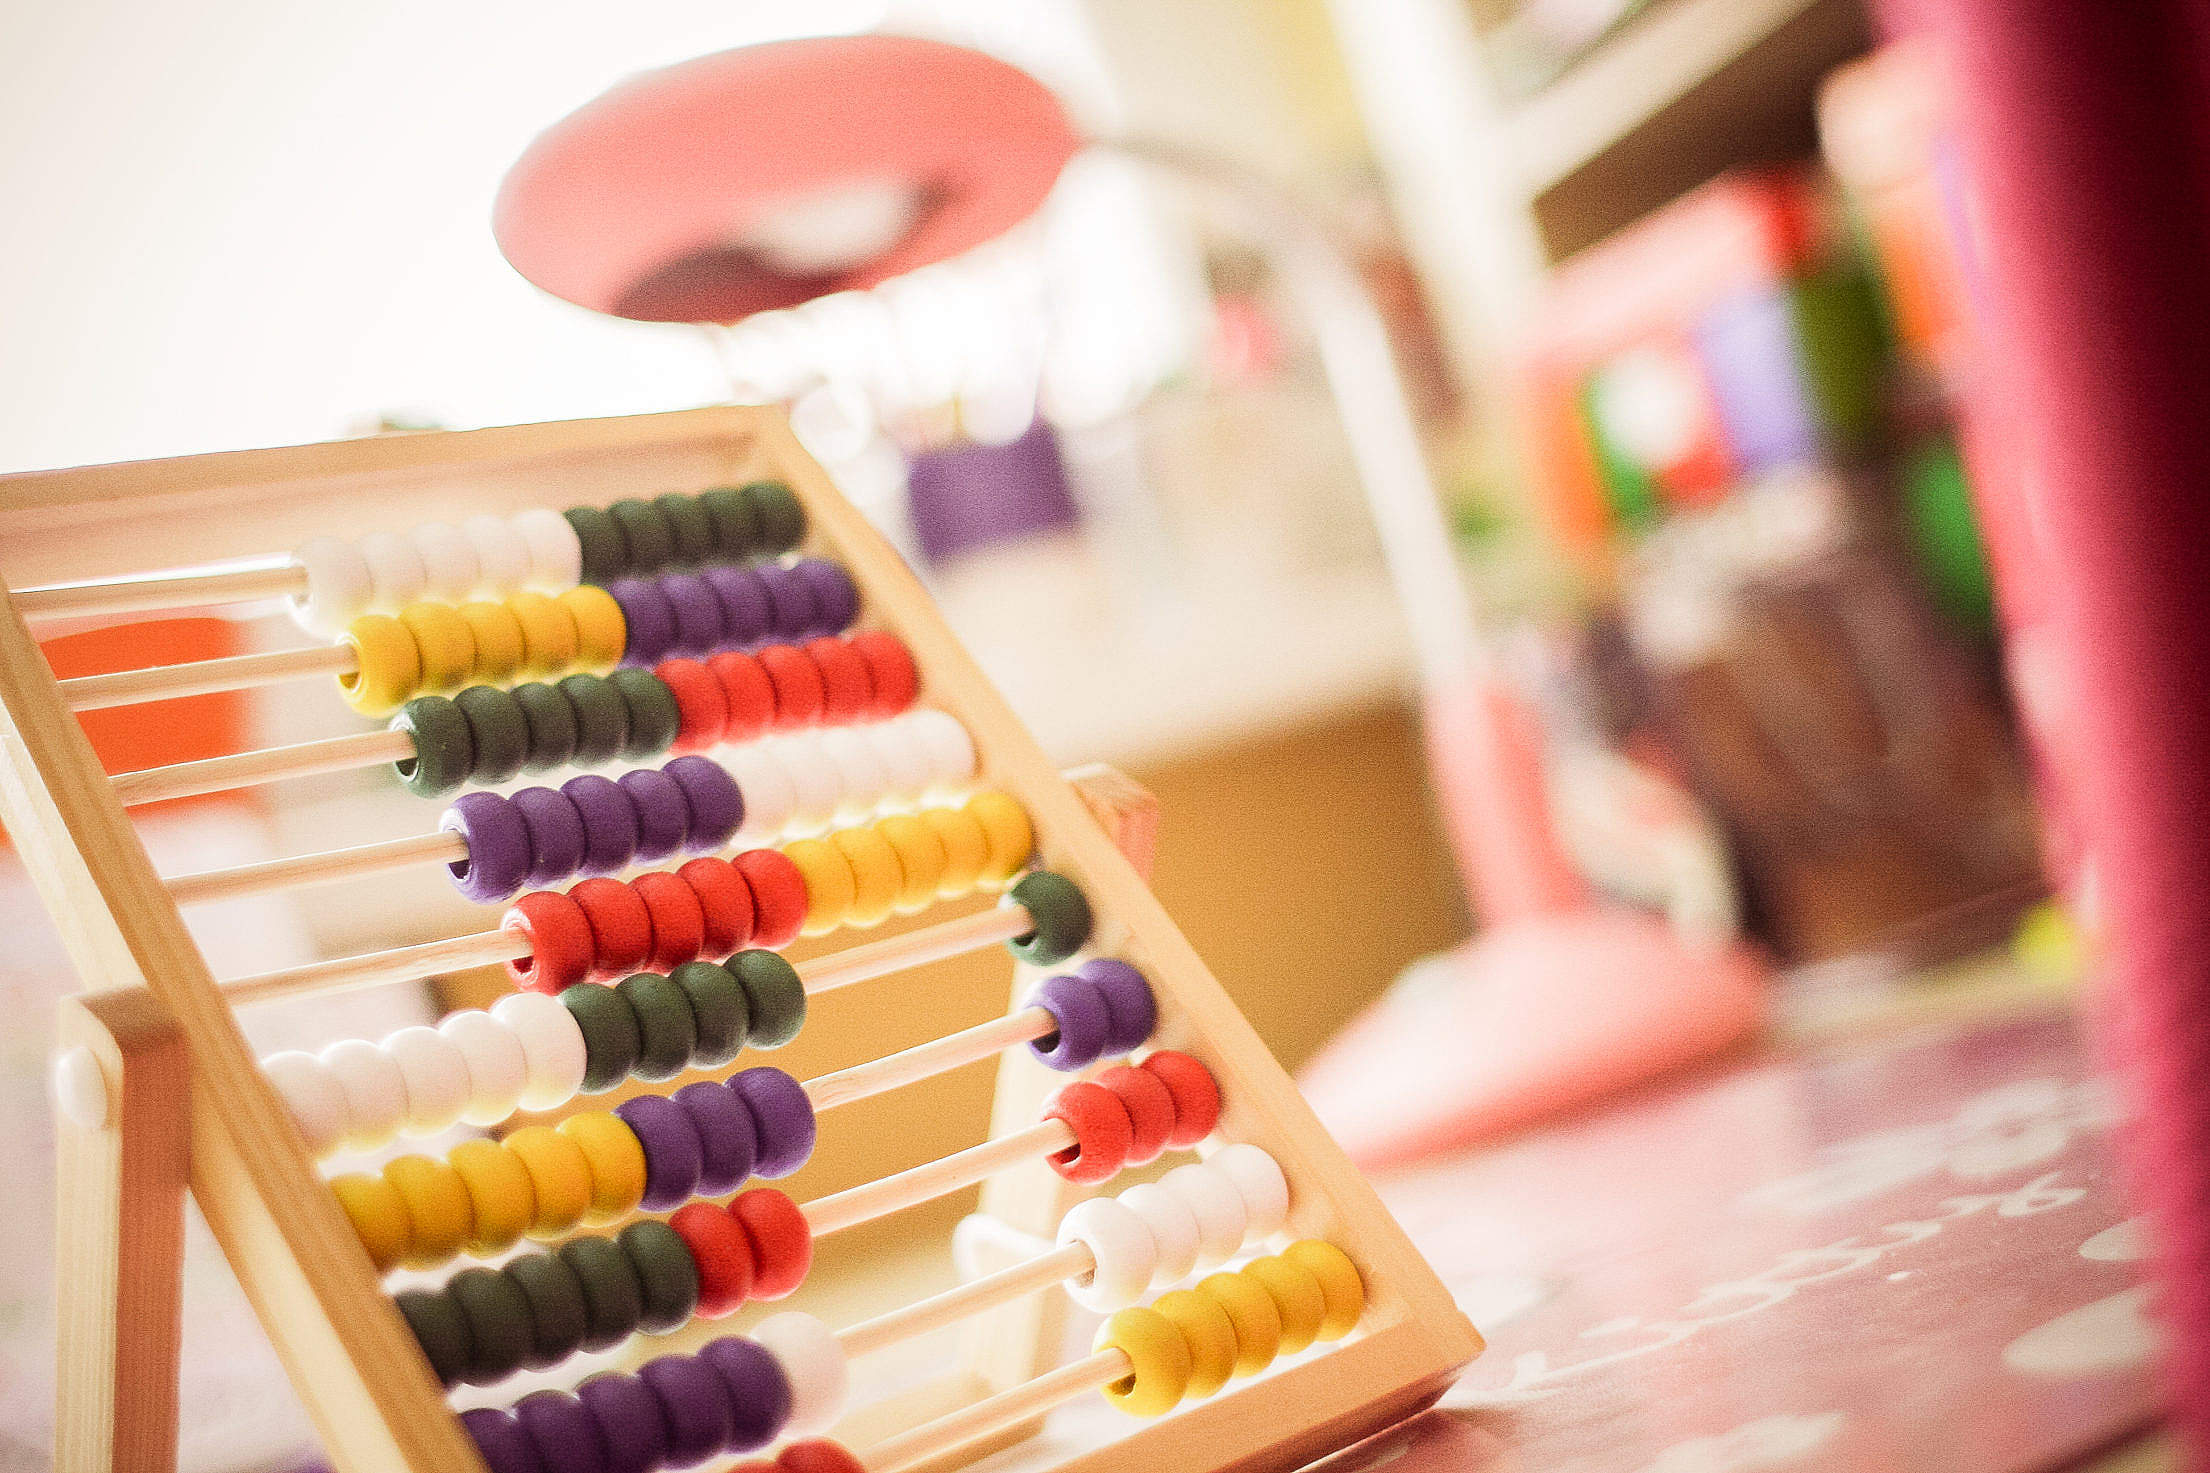 Children's Wooden Abacus Free Stock Photo